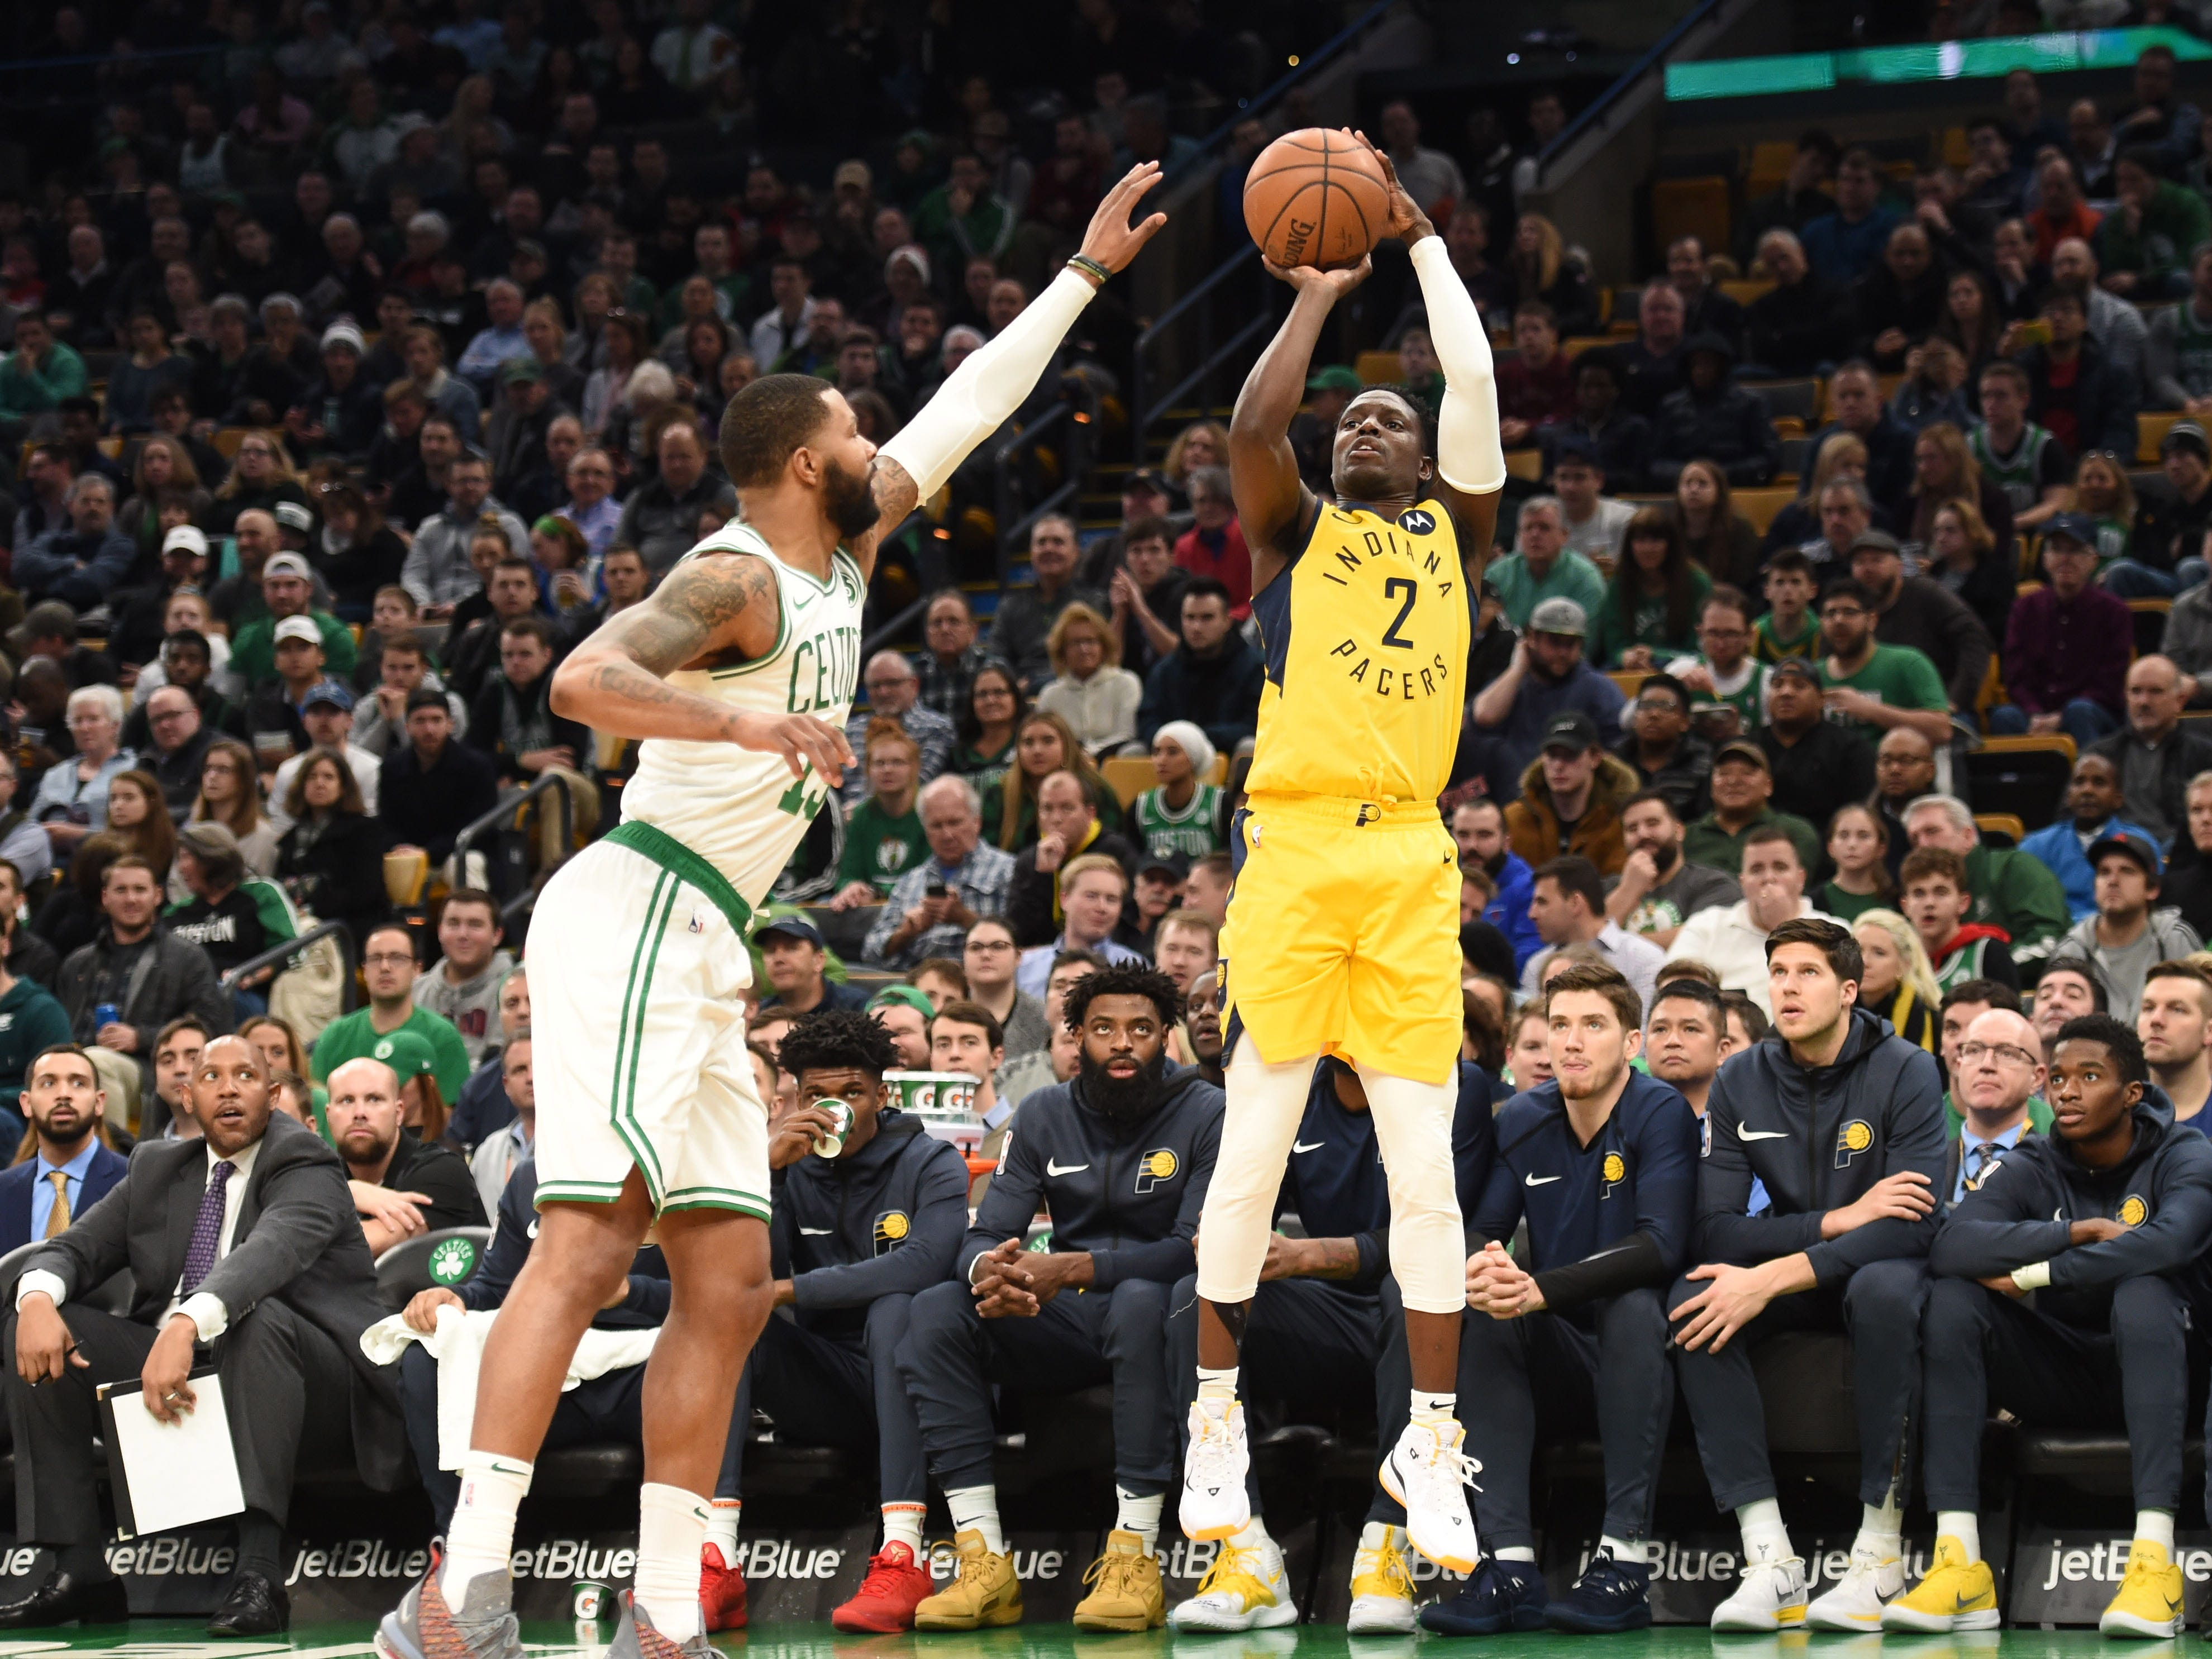 Jan 9, 2019; Boston, MA, USA; Indiana Pacers guard Darren Collison (2) shoots the ball against Boston Celtics forward Marcus Morris (13) during the first half at TD Garden.